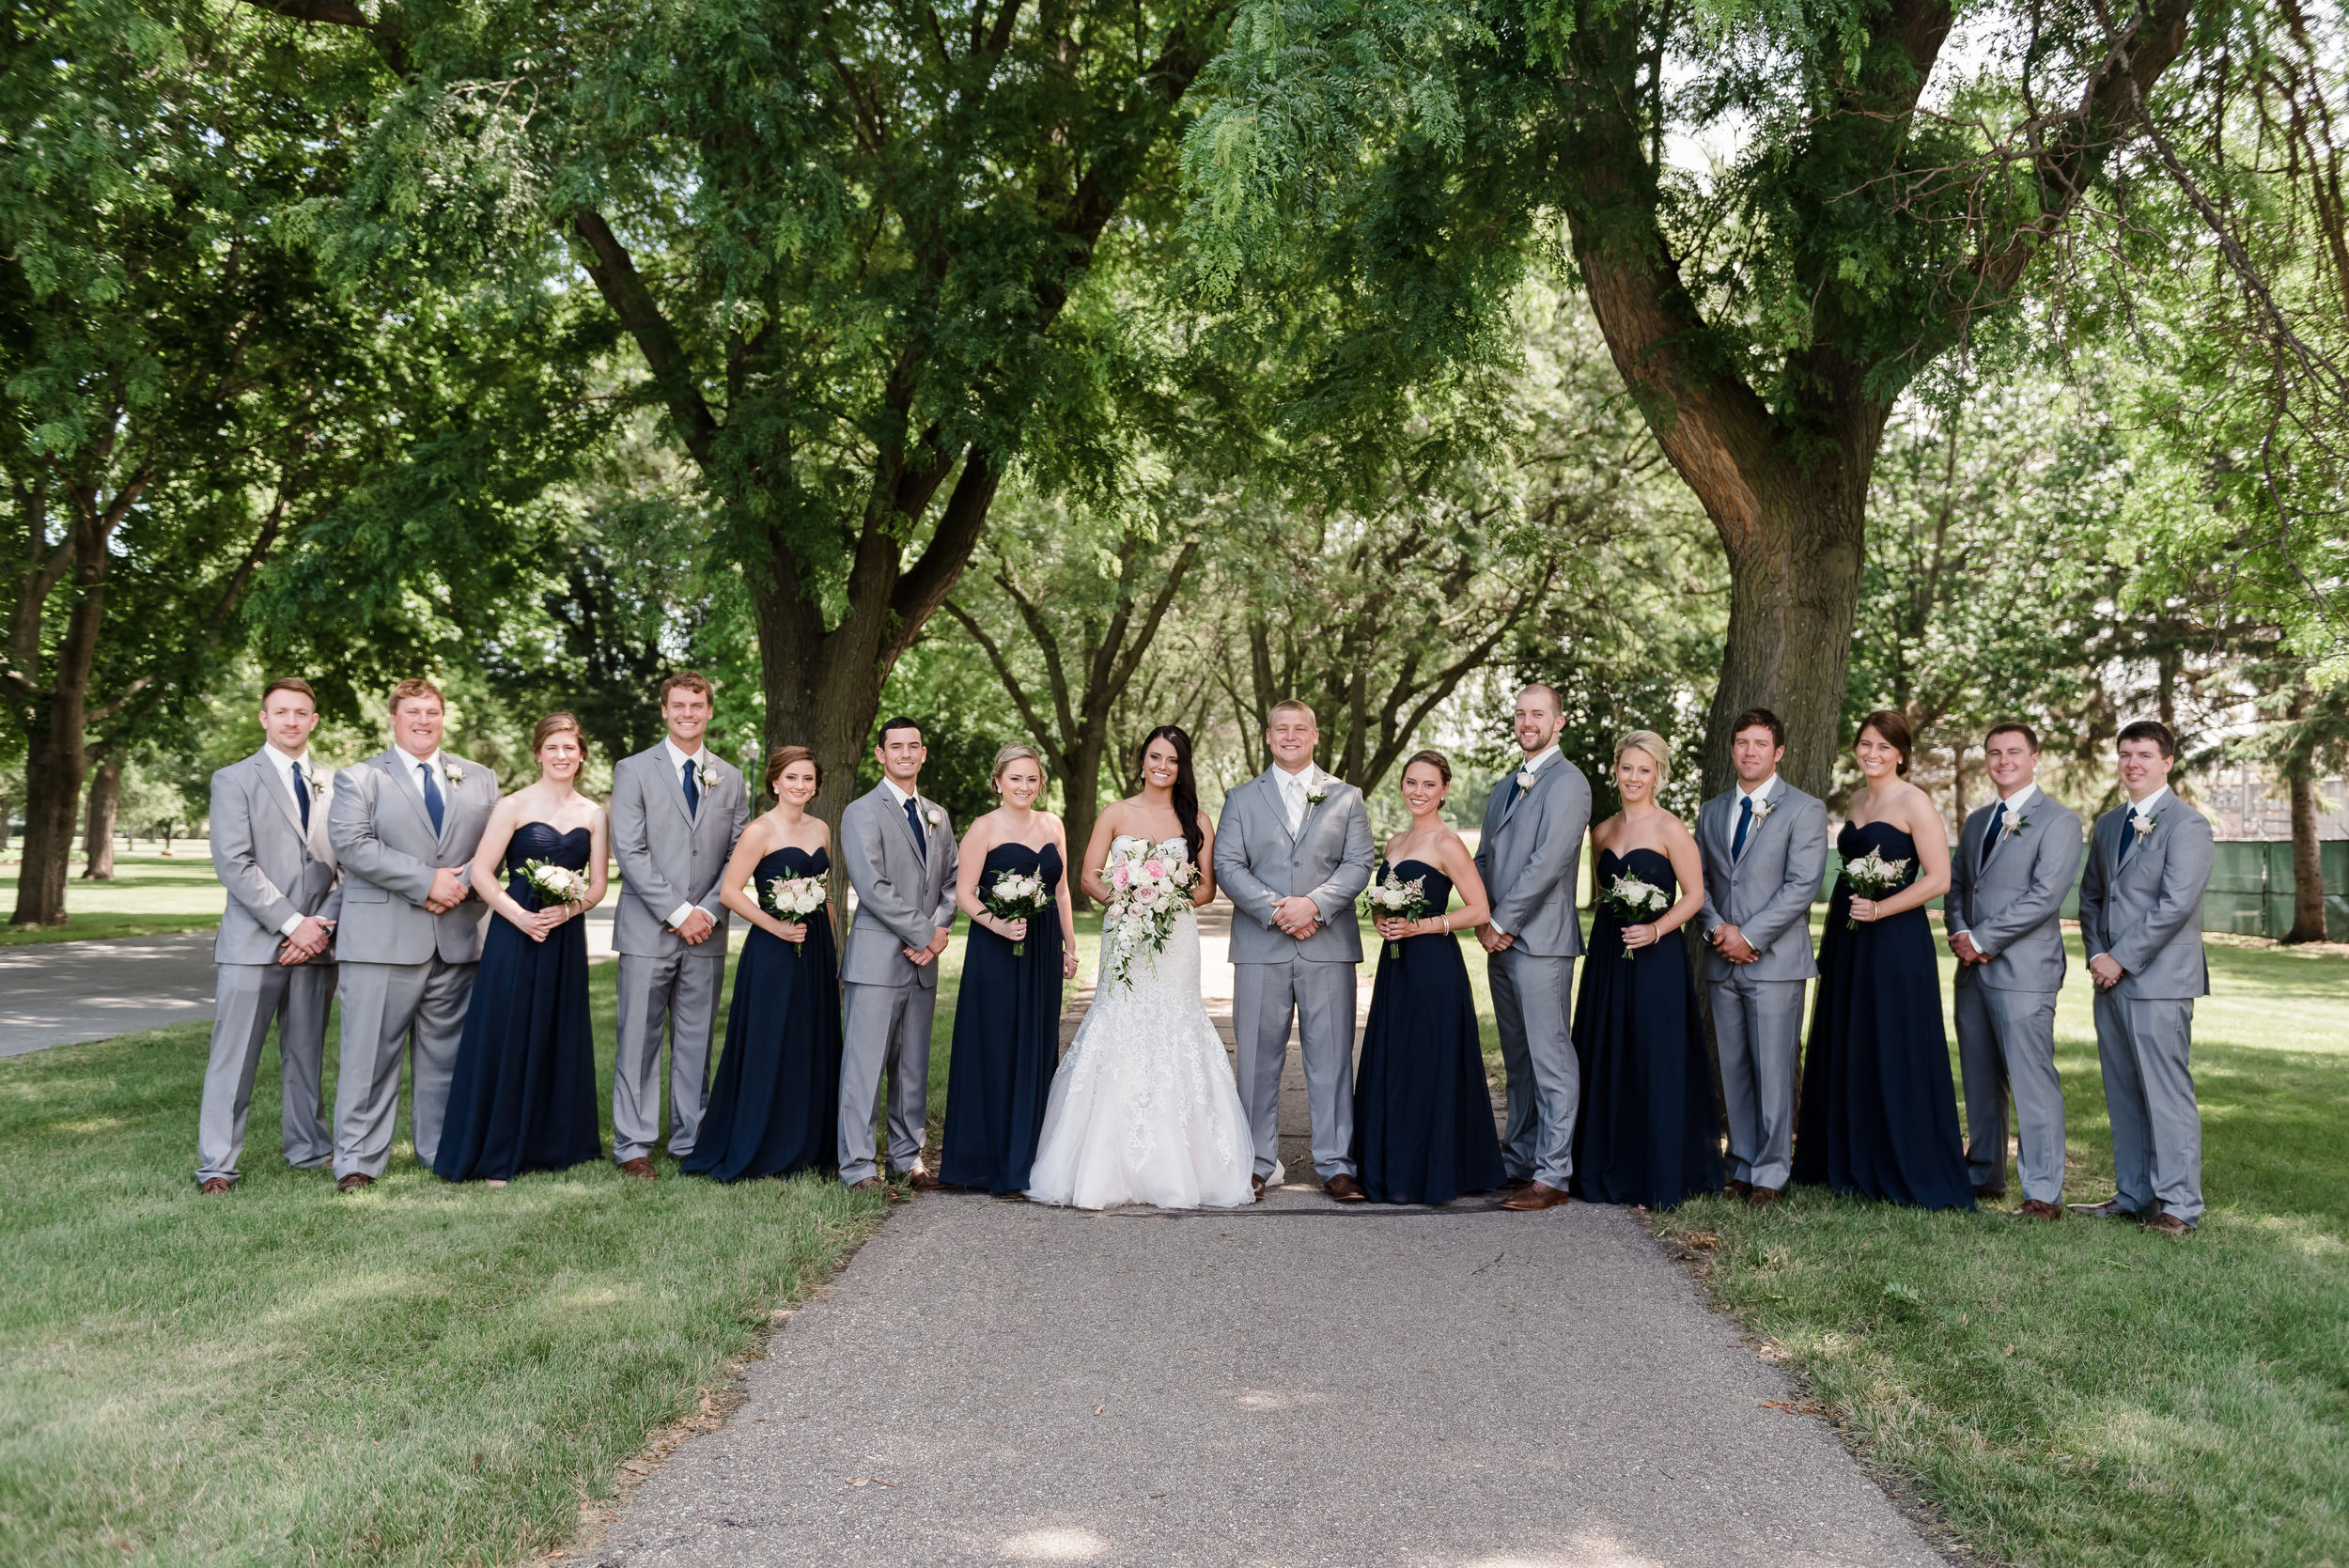 Layce and Brandon - Wedding - Bridal Party and Family - Outdoor Portraits-6.jpg